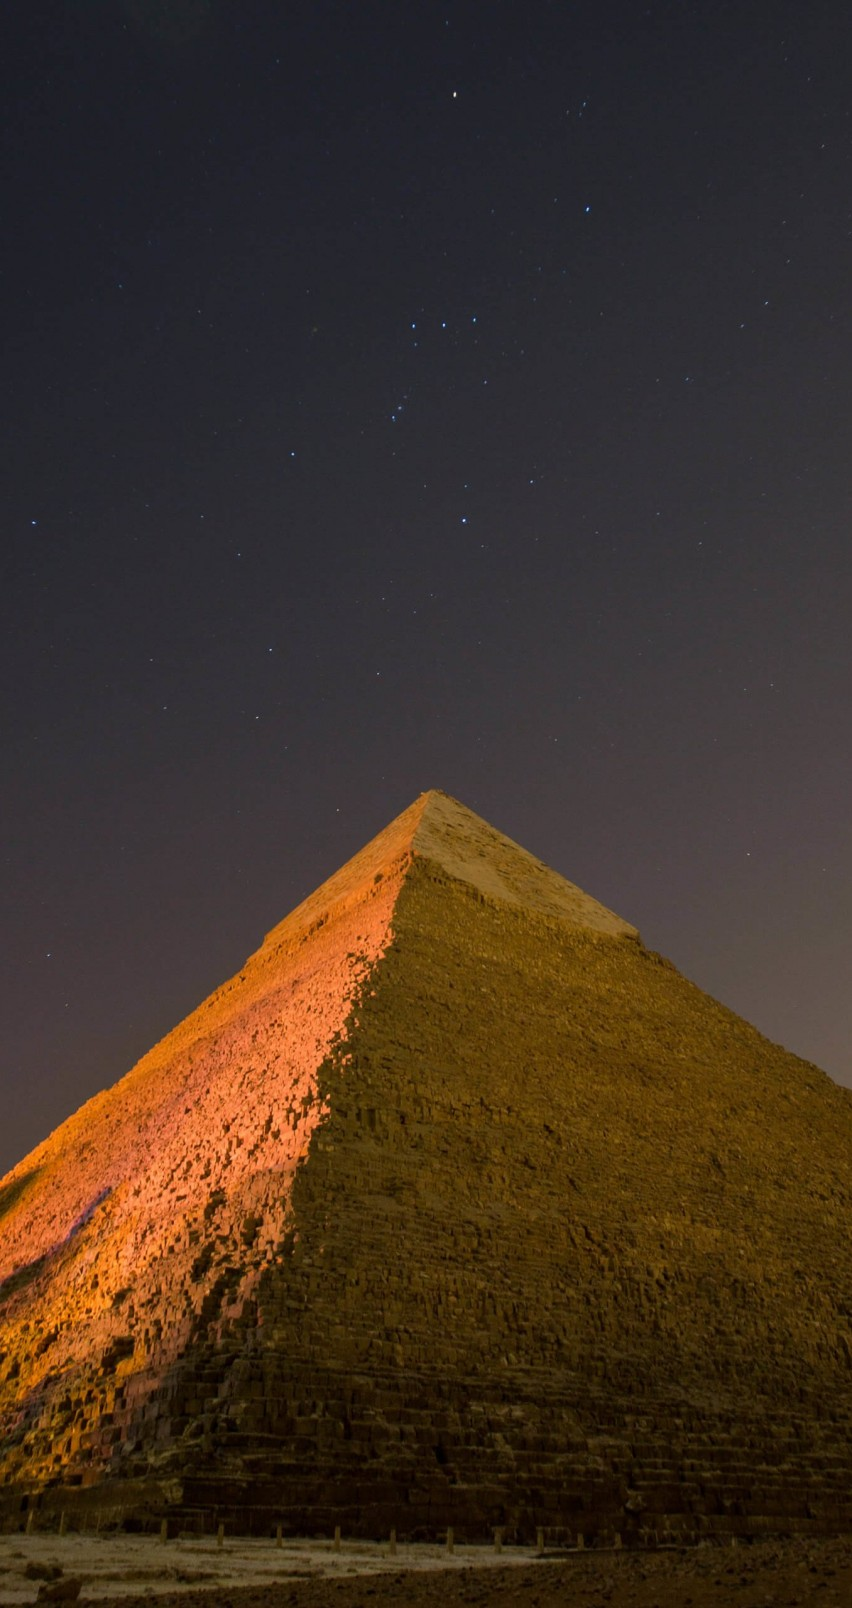 Pyramid by Night Wallpaper for Apple iPhone 6 / 6s